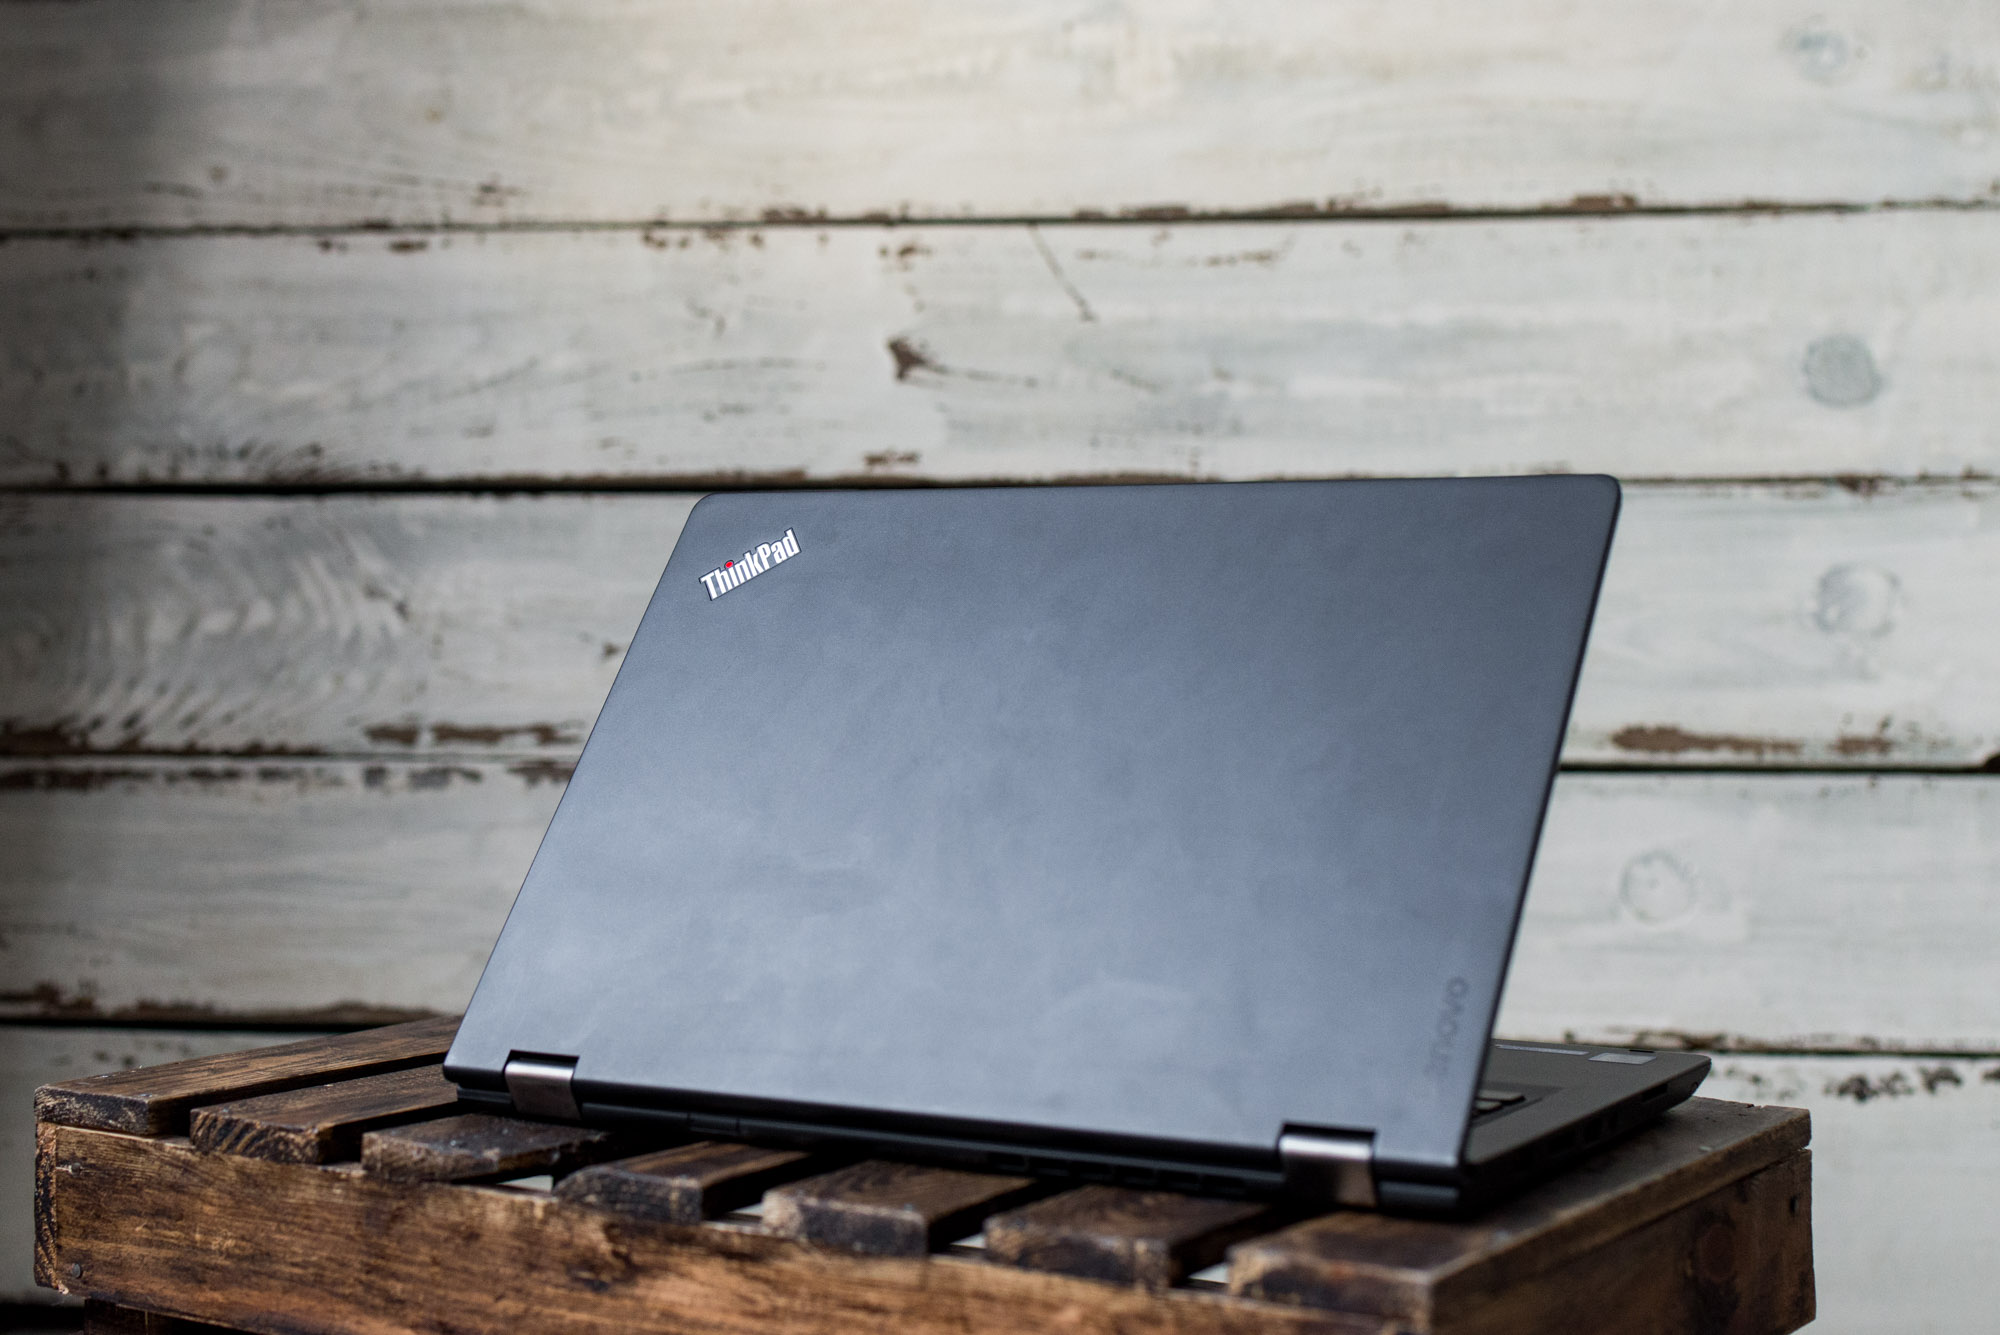 Thinkpad-P40-yoga--4